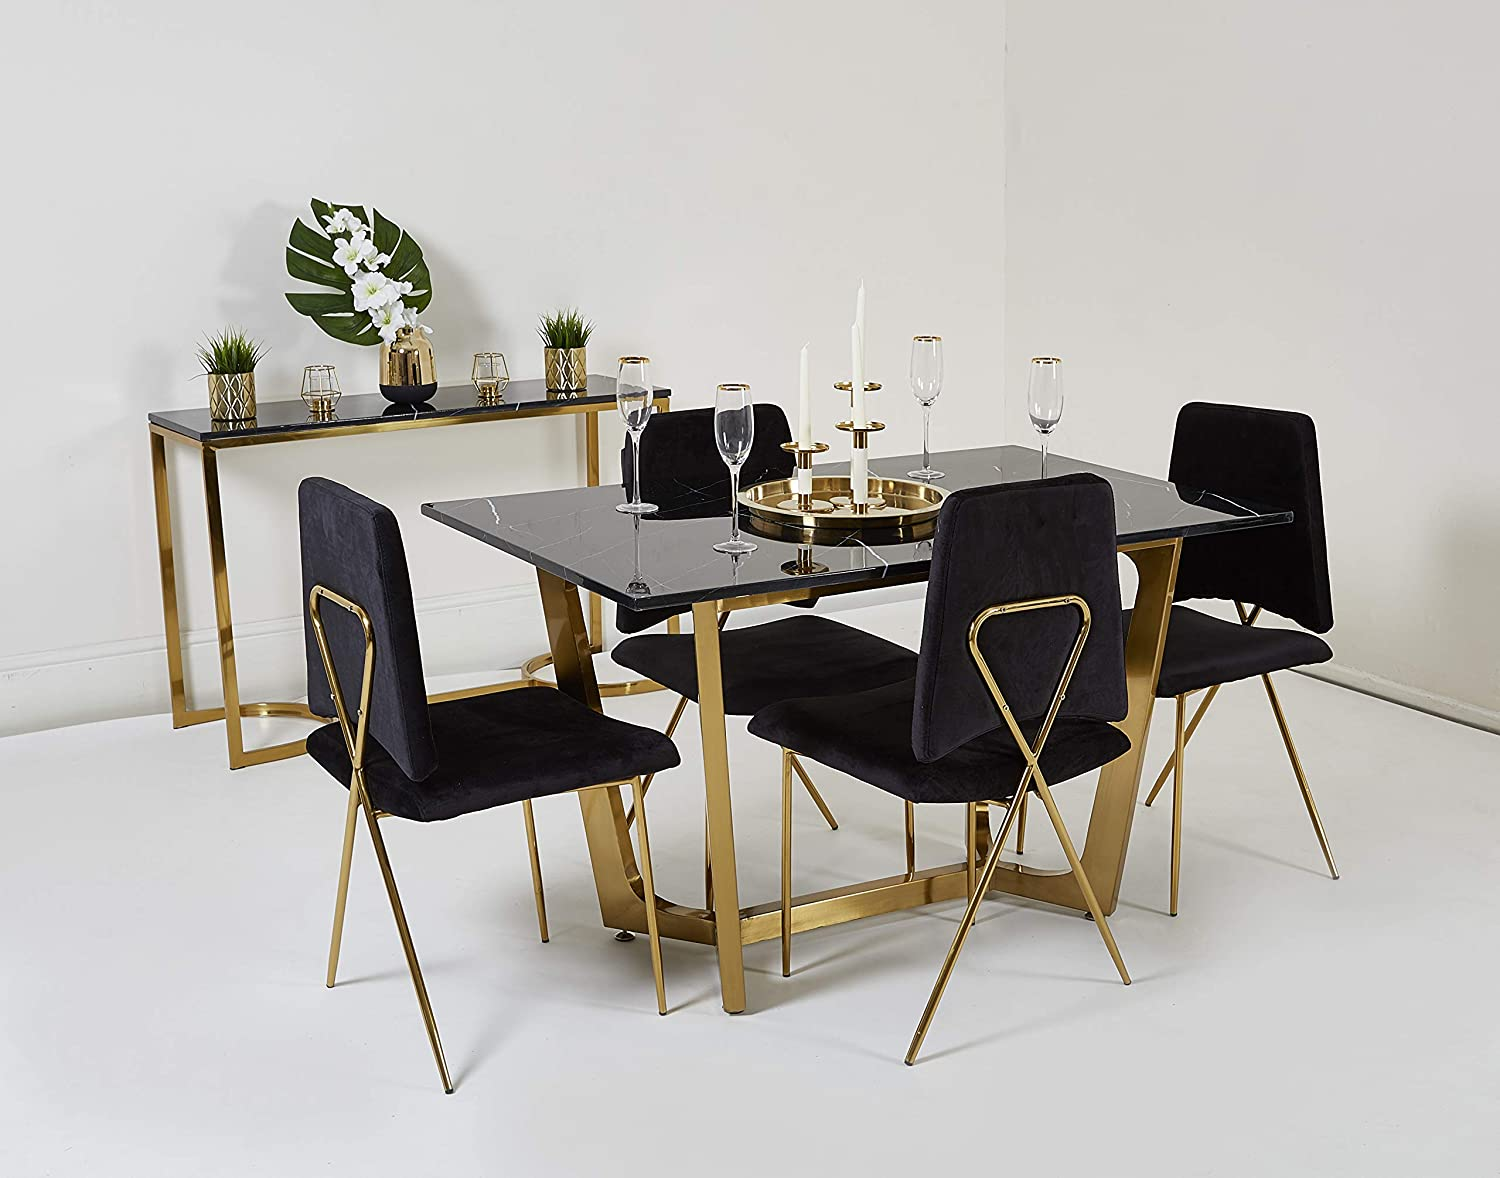 Abreo Marble Top Dining Table White Black Gold Silver Metal Legs For Dining Room 4 Seater Black Soft Velvet Dining Chair X1 Amazon Co Uk Kitchen Home